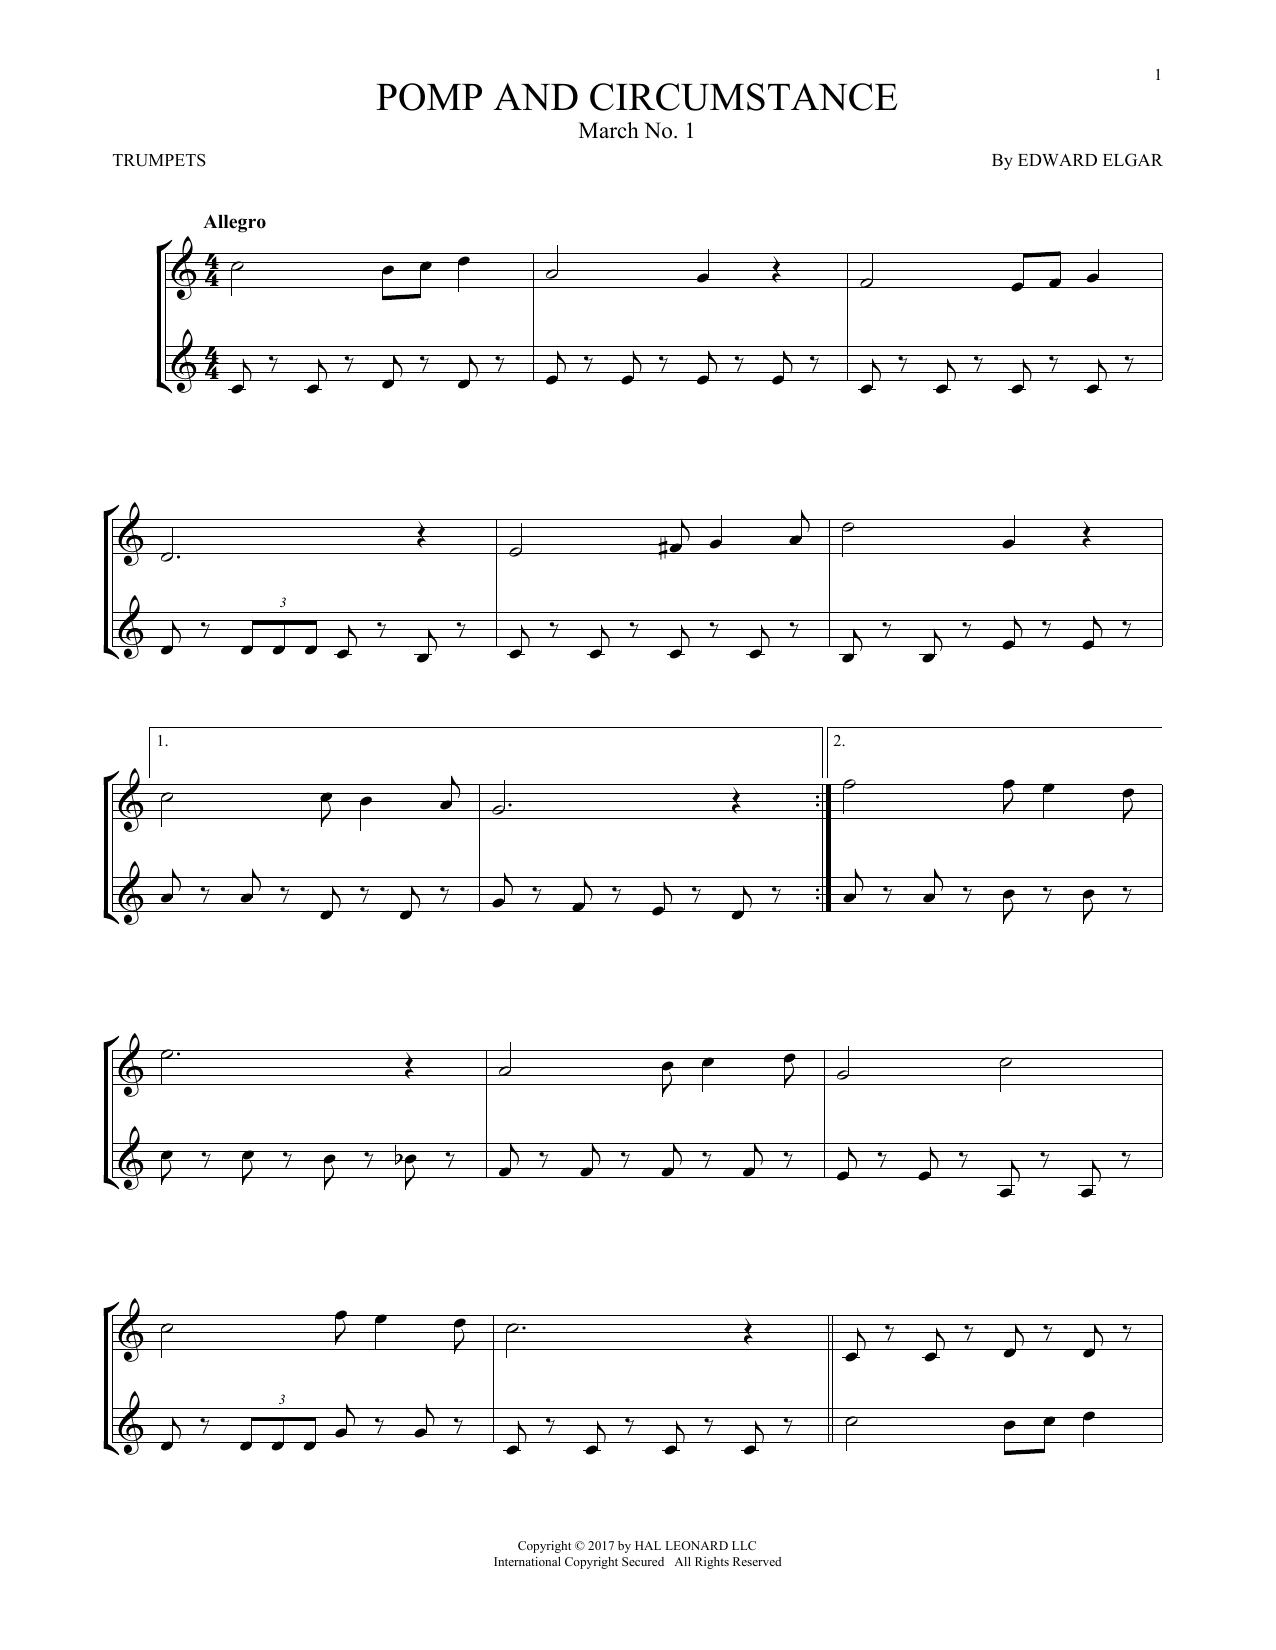 Pomp And Circumstance, March No. 1 (Trumpet Duet)